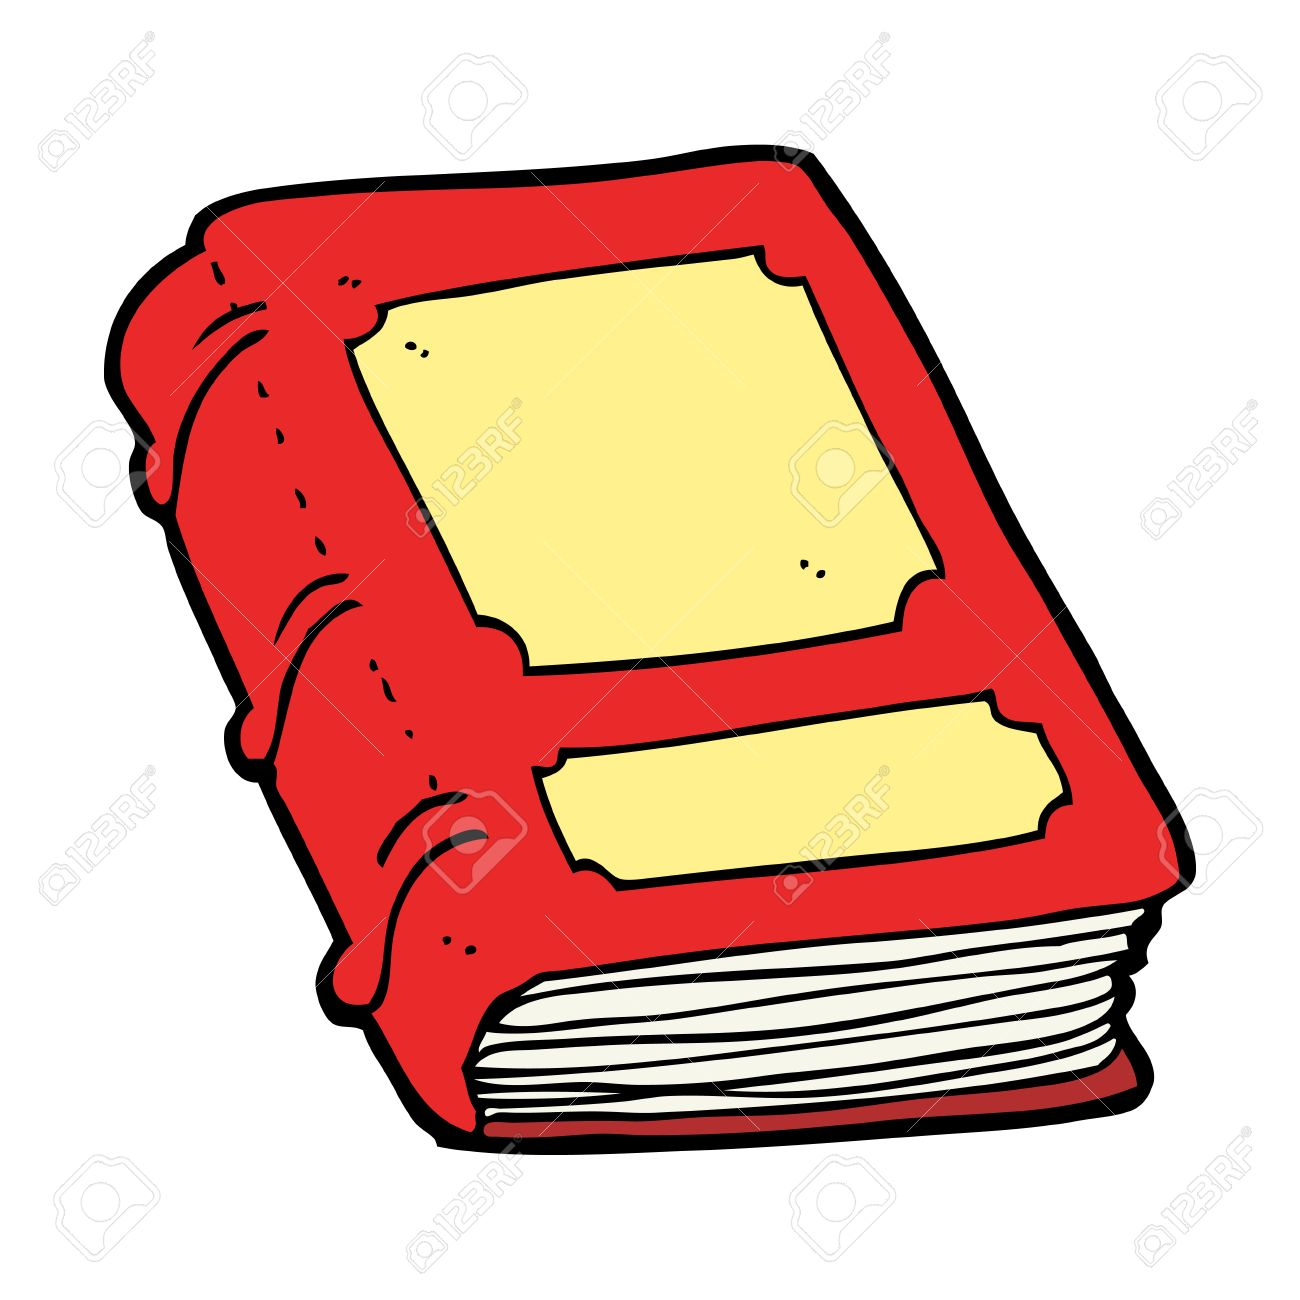 1300x1300 Cartoon Old Book Royalty Free Cliparts, Vectors, And Stock